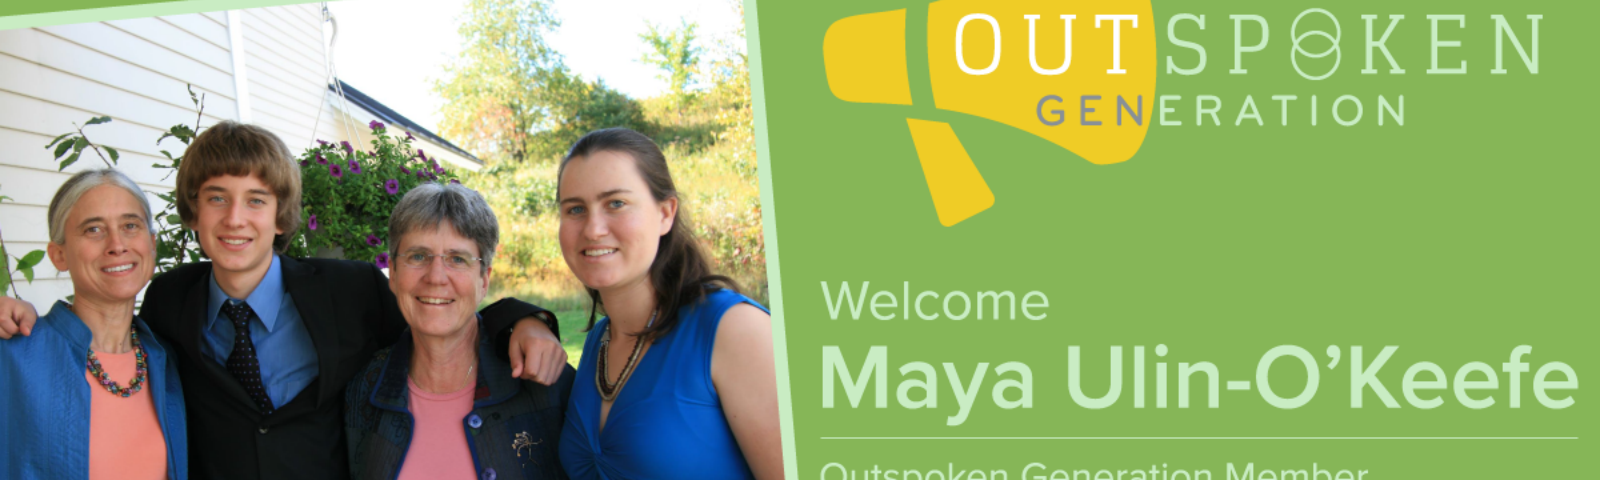 Outspoken Generation Welcomes Maya Ulin-O'Keefe